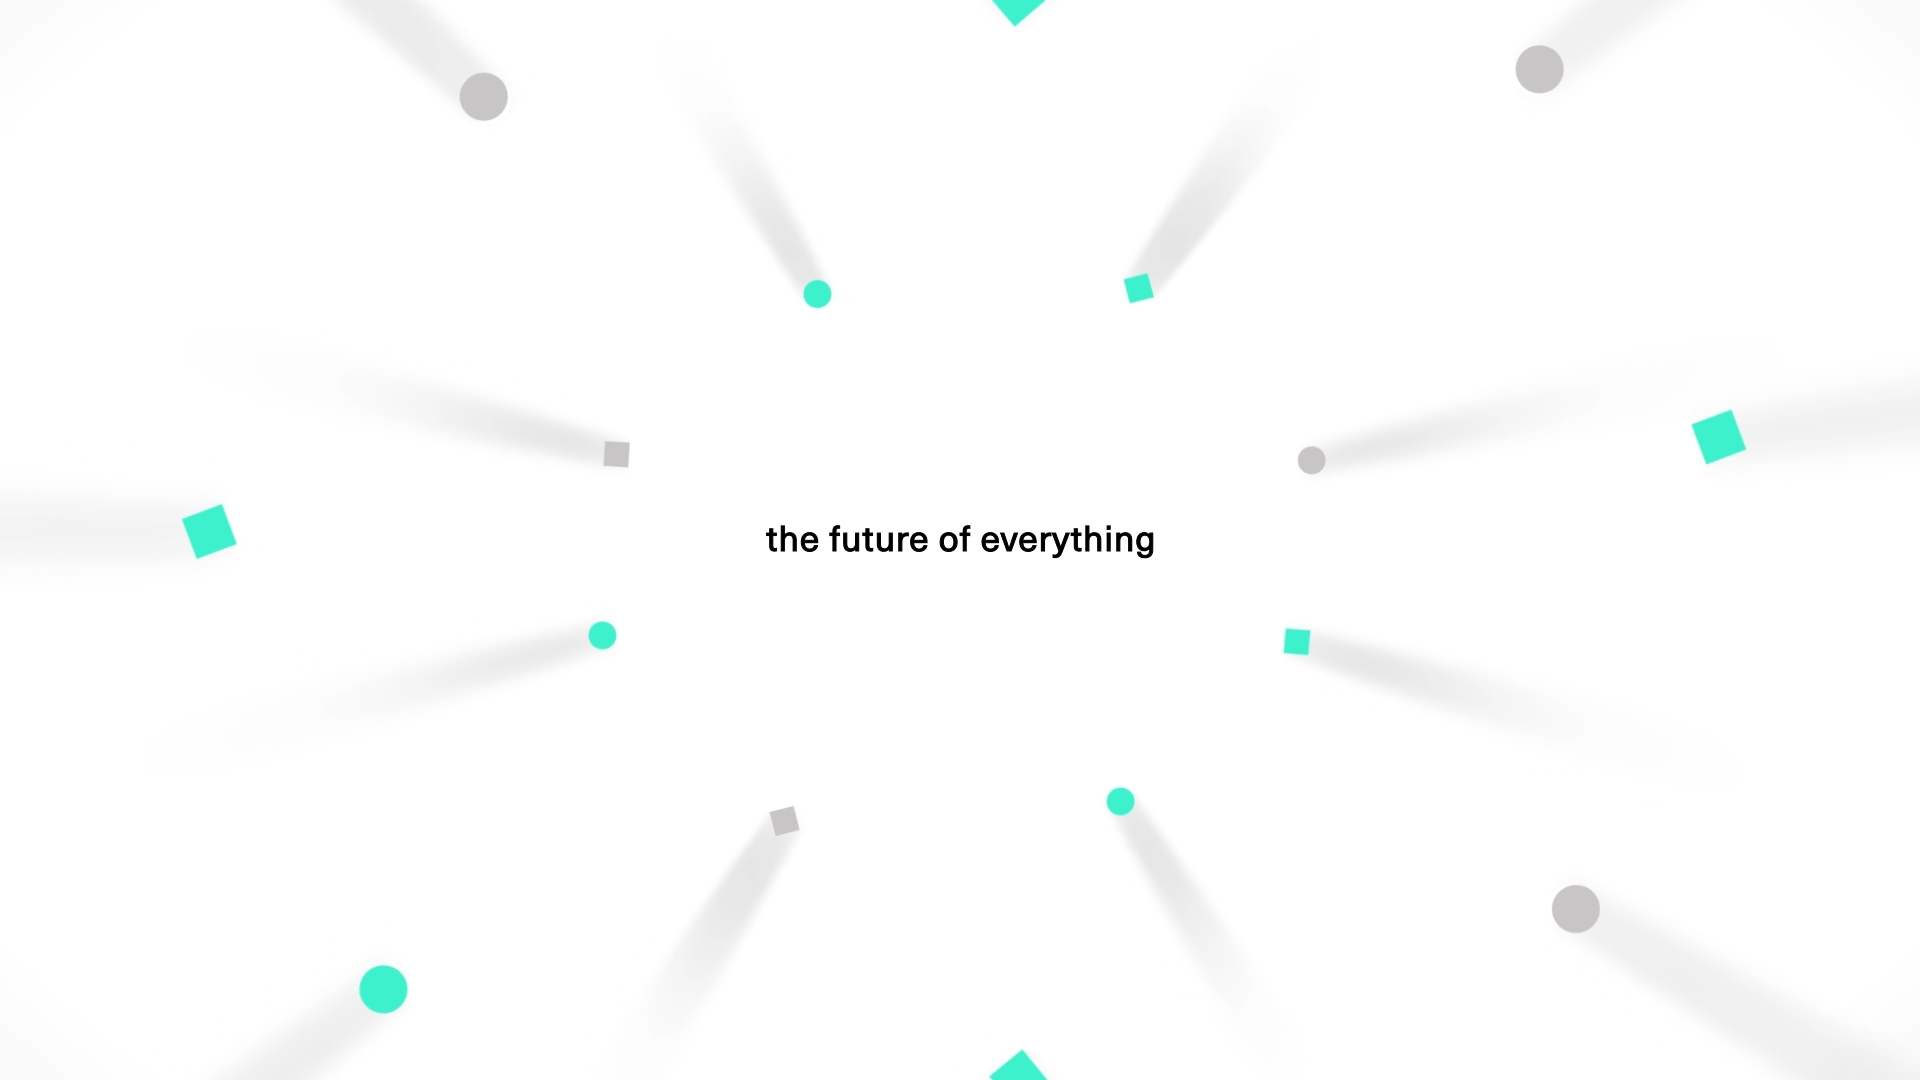 the future of everything graphic